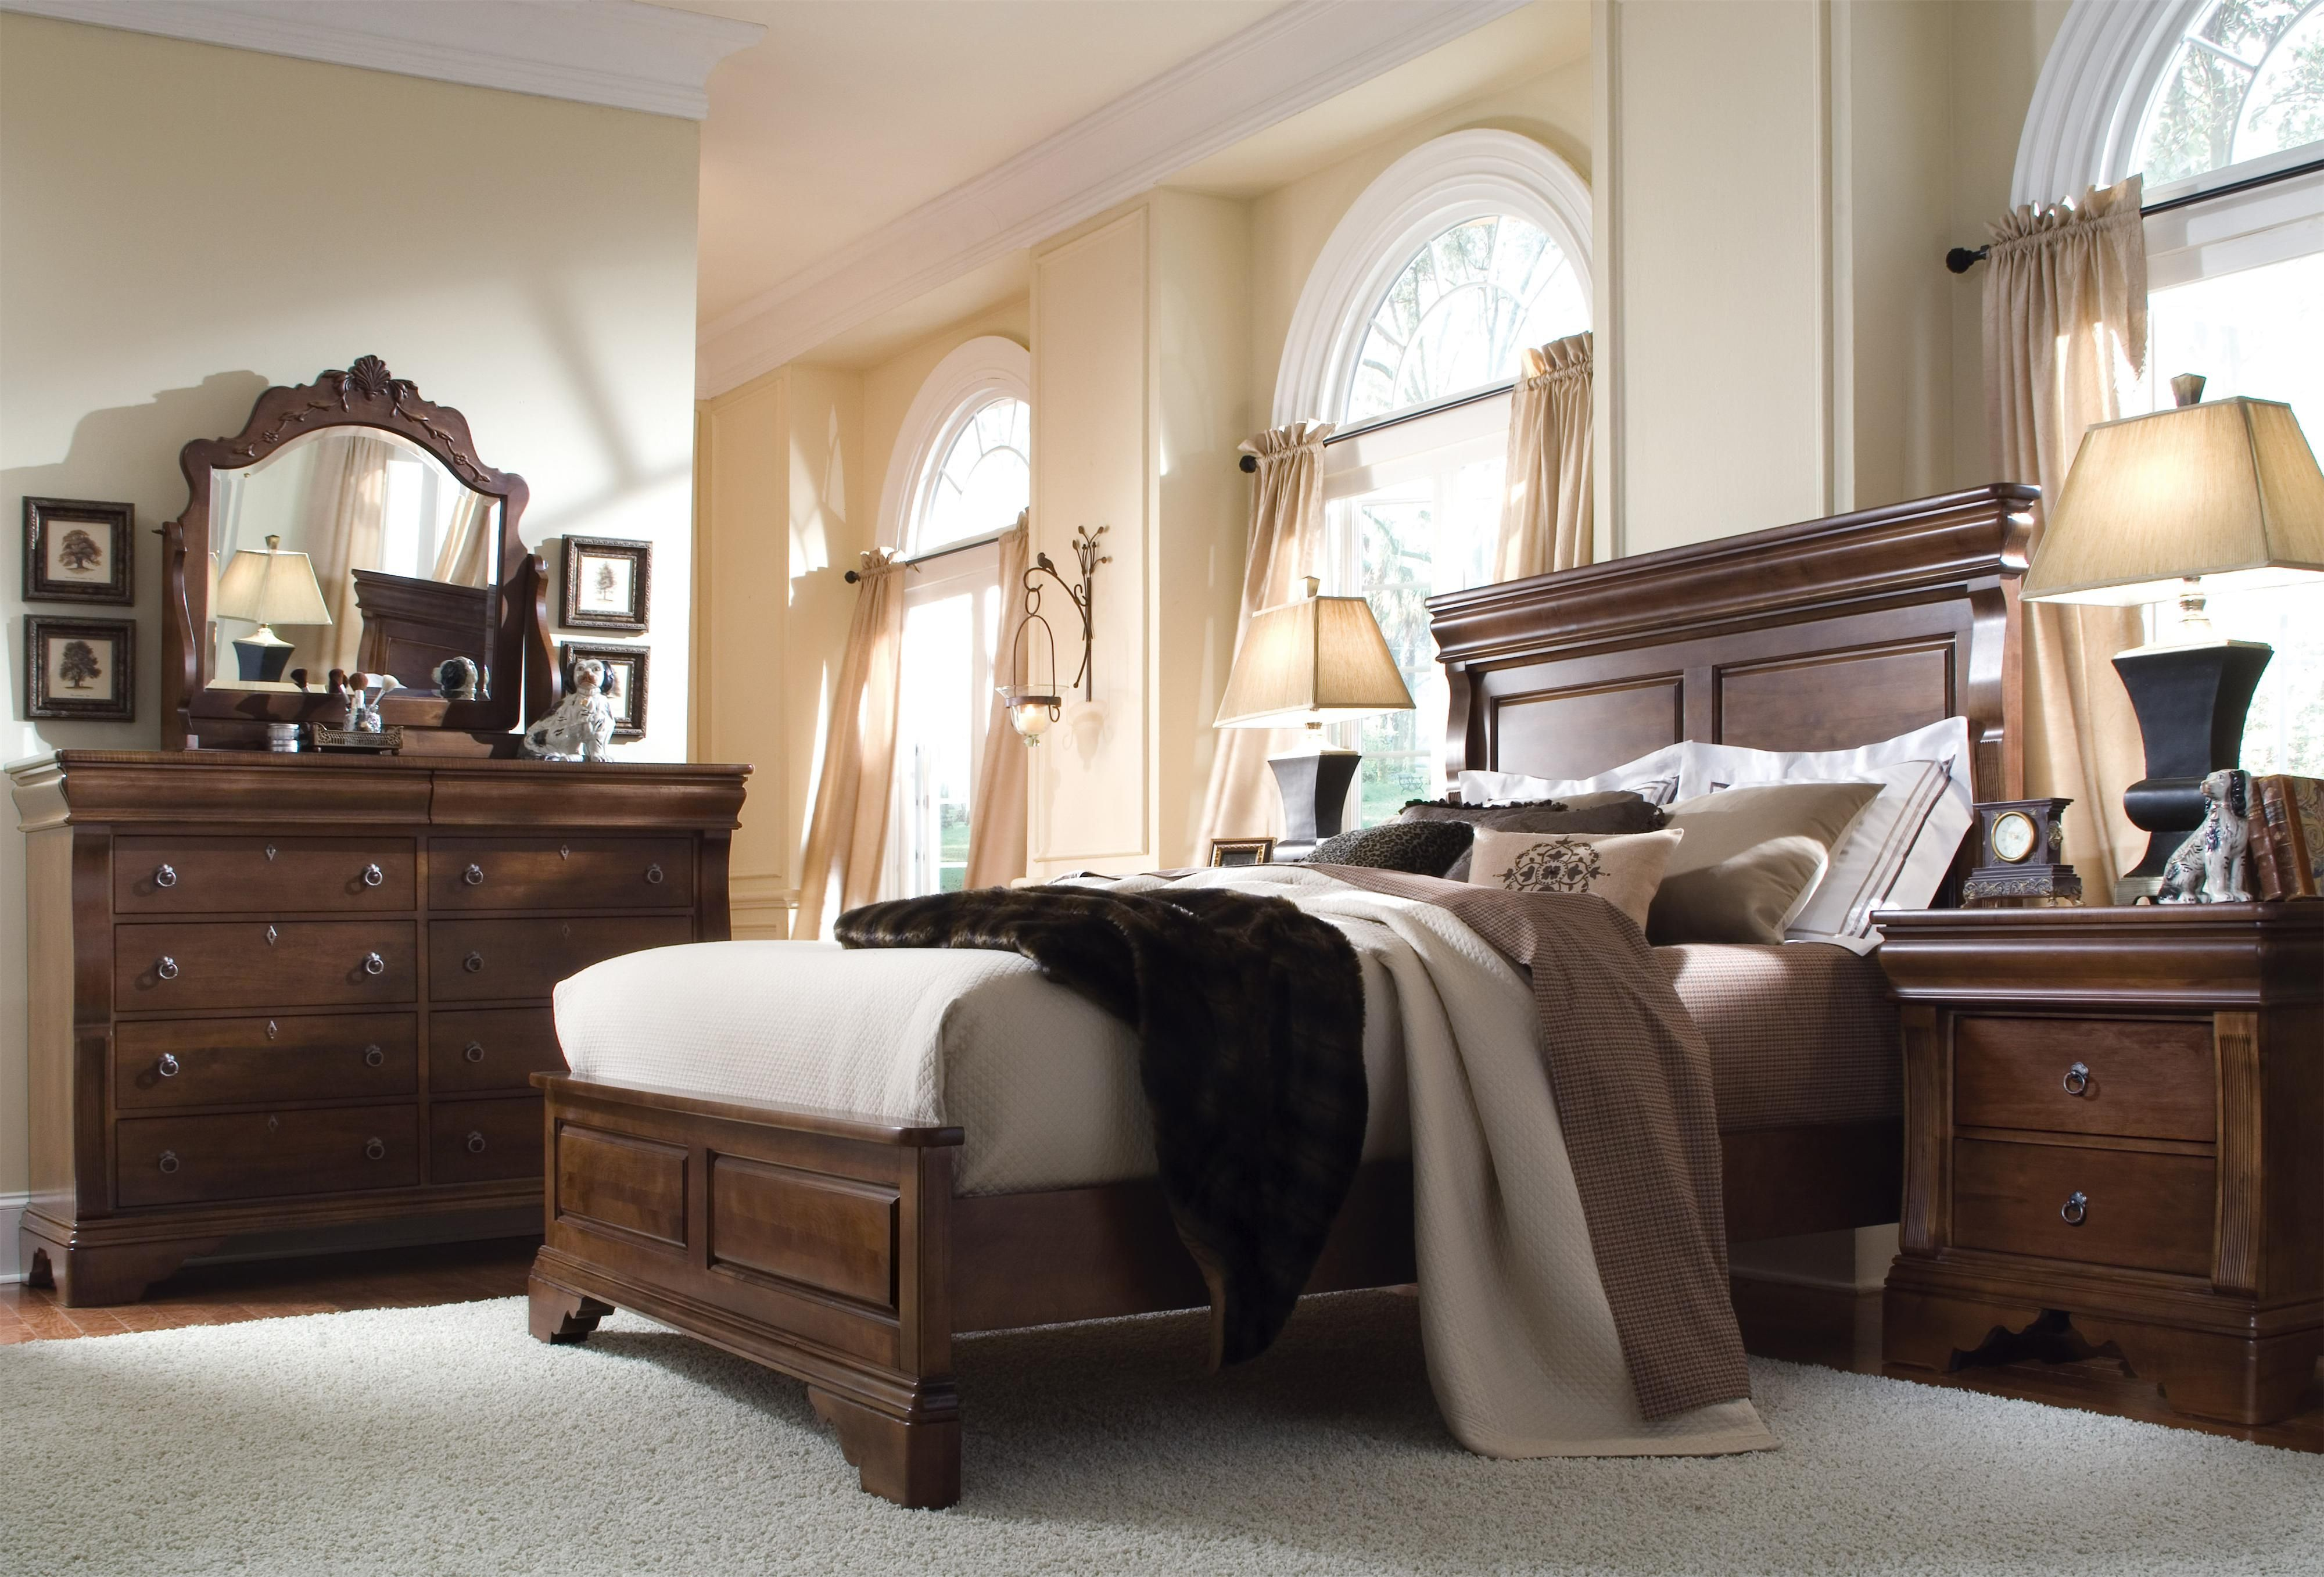 Kincaid Keswick Solid Wood Chantilly Low Profile Bedroom Set Bedroom Furniture Design Wood Bedroom Sets Wooden Bedroom Furniture